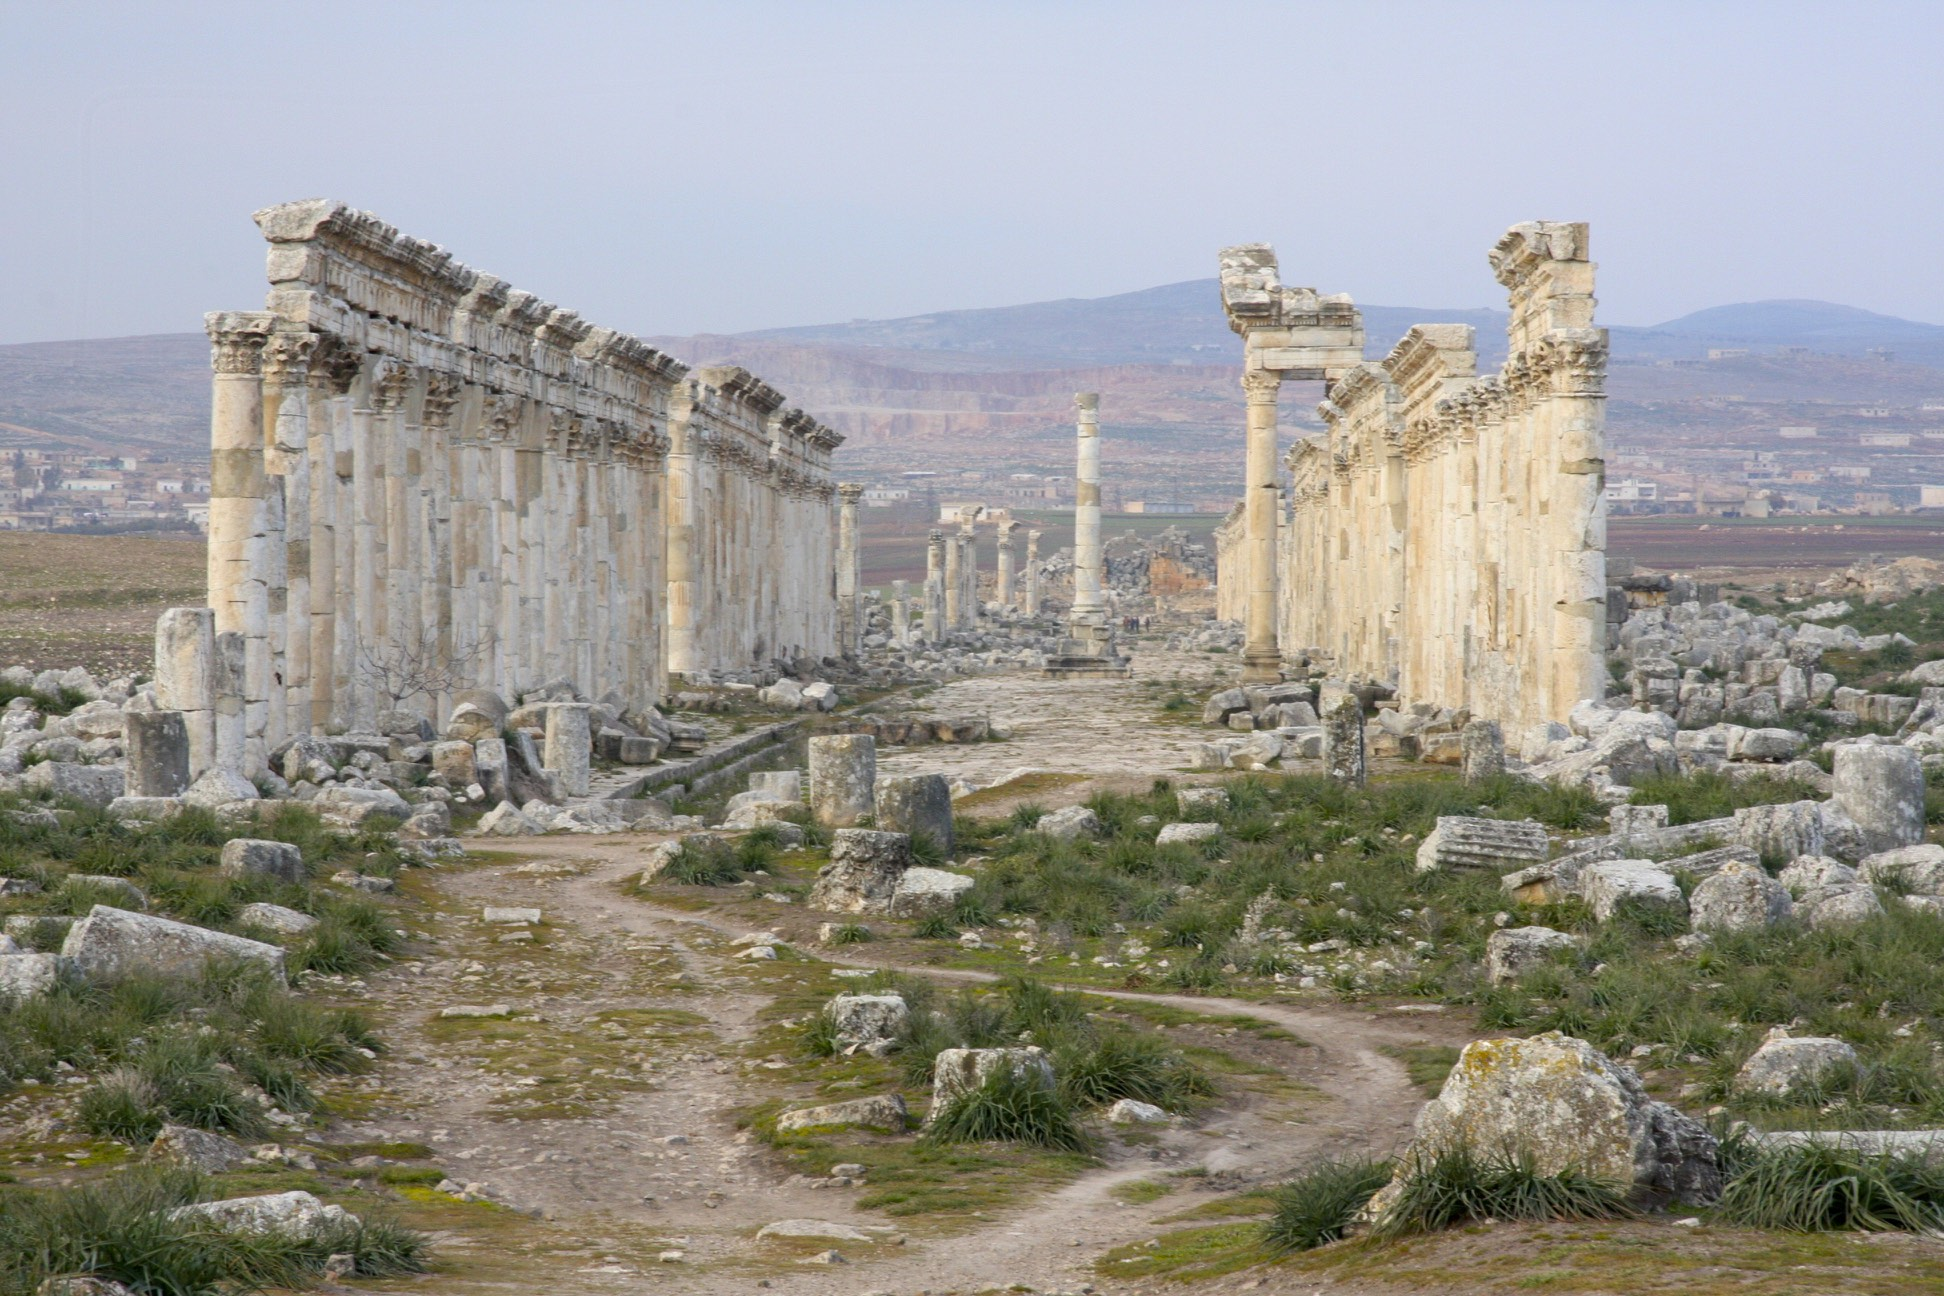 The ancient Roman City of Apamea established in 300 BC.